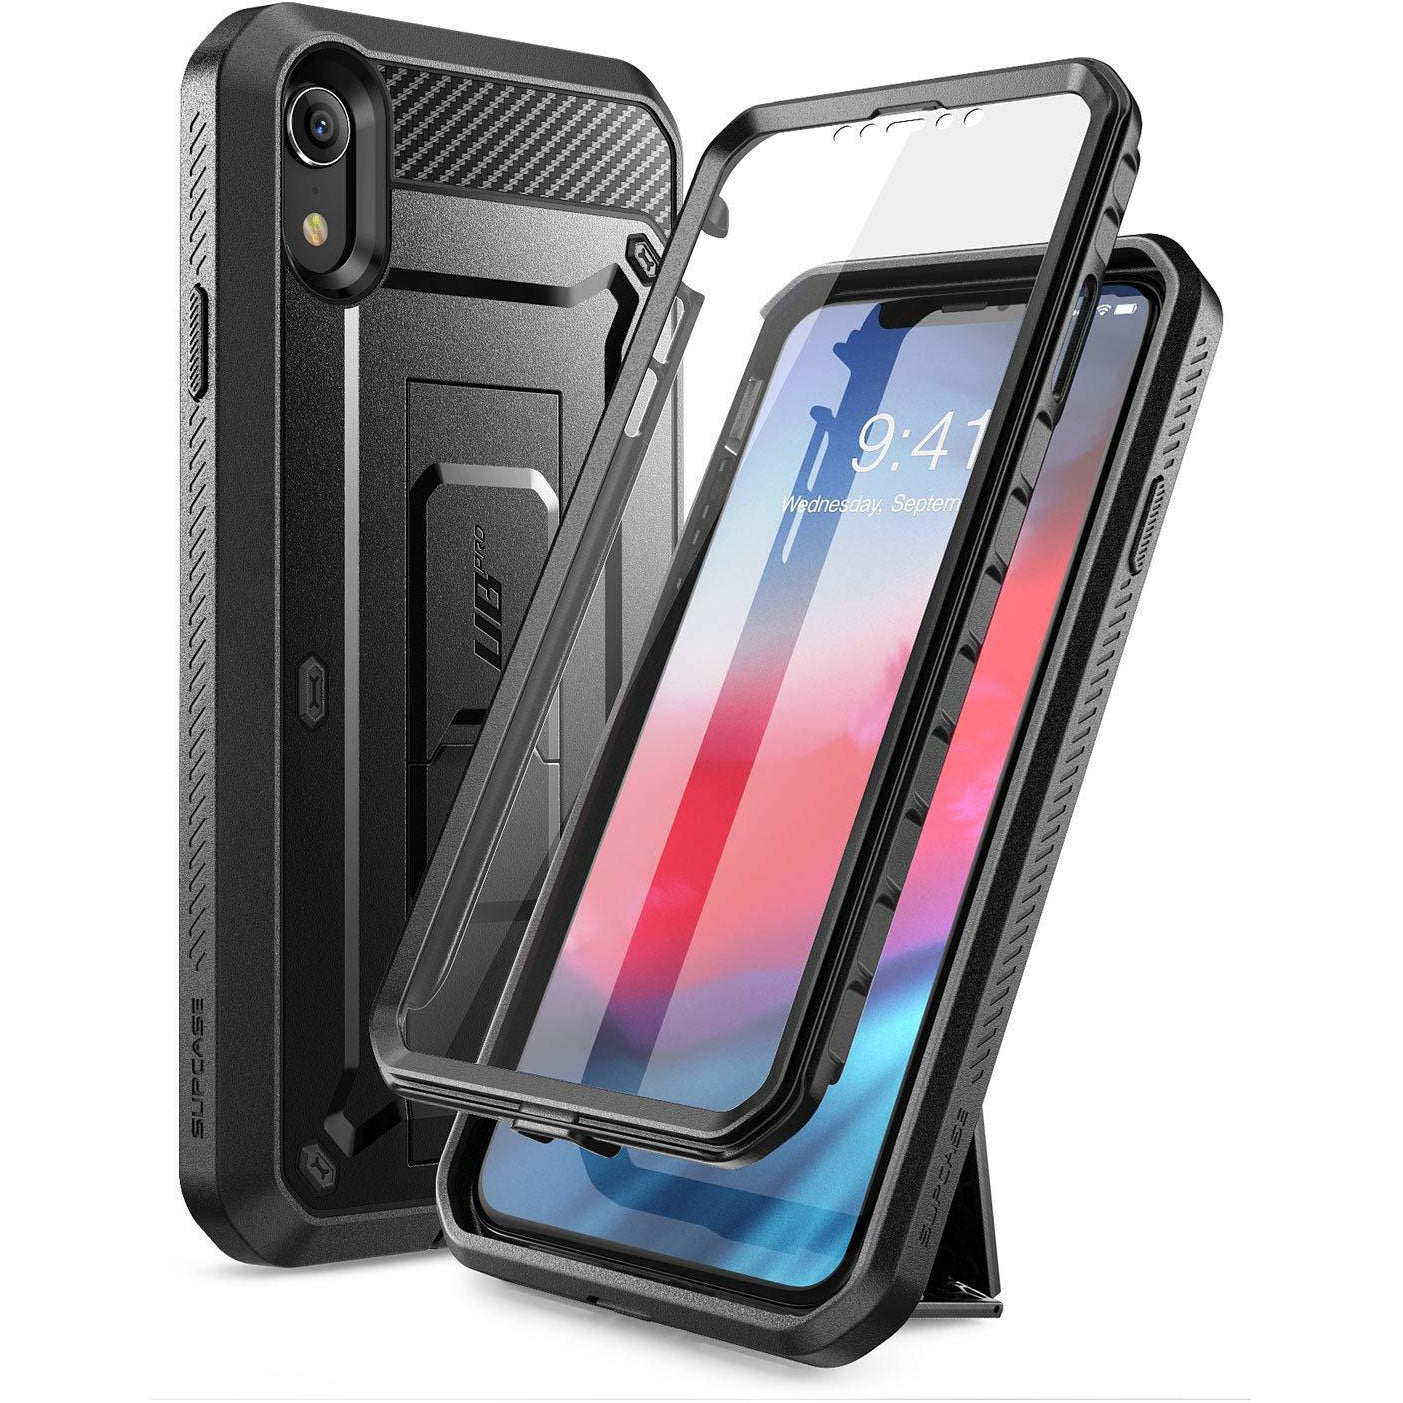 SUPCASE iPhone XR Case, Full-Body Holster Cover with Built-in Screen Protector